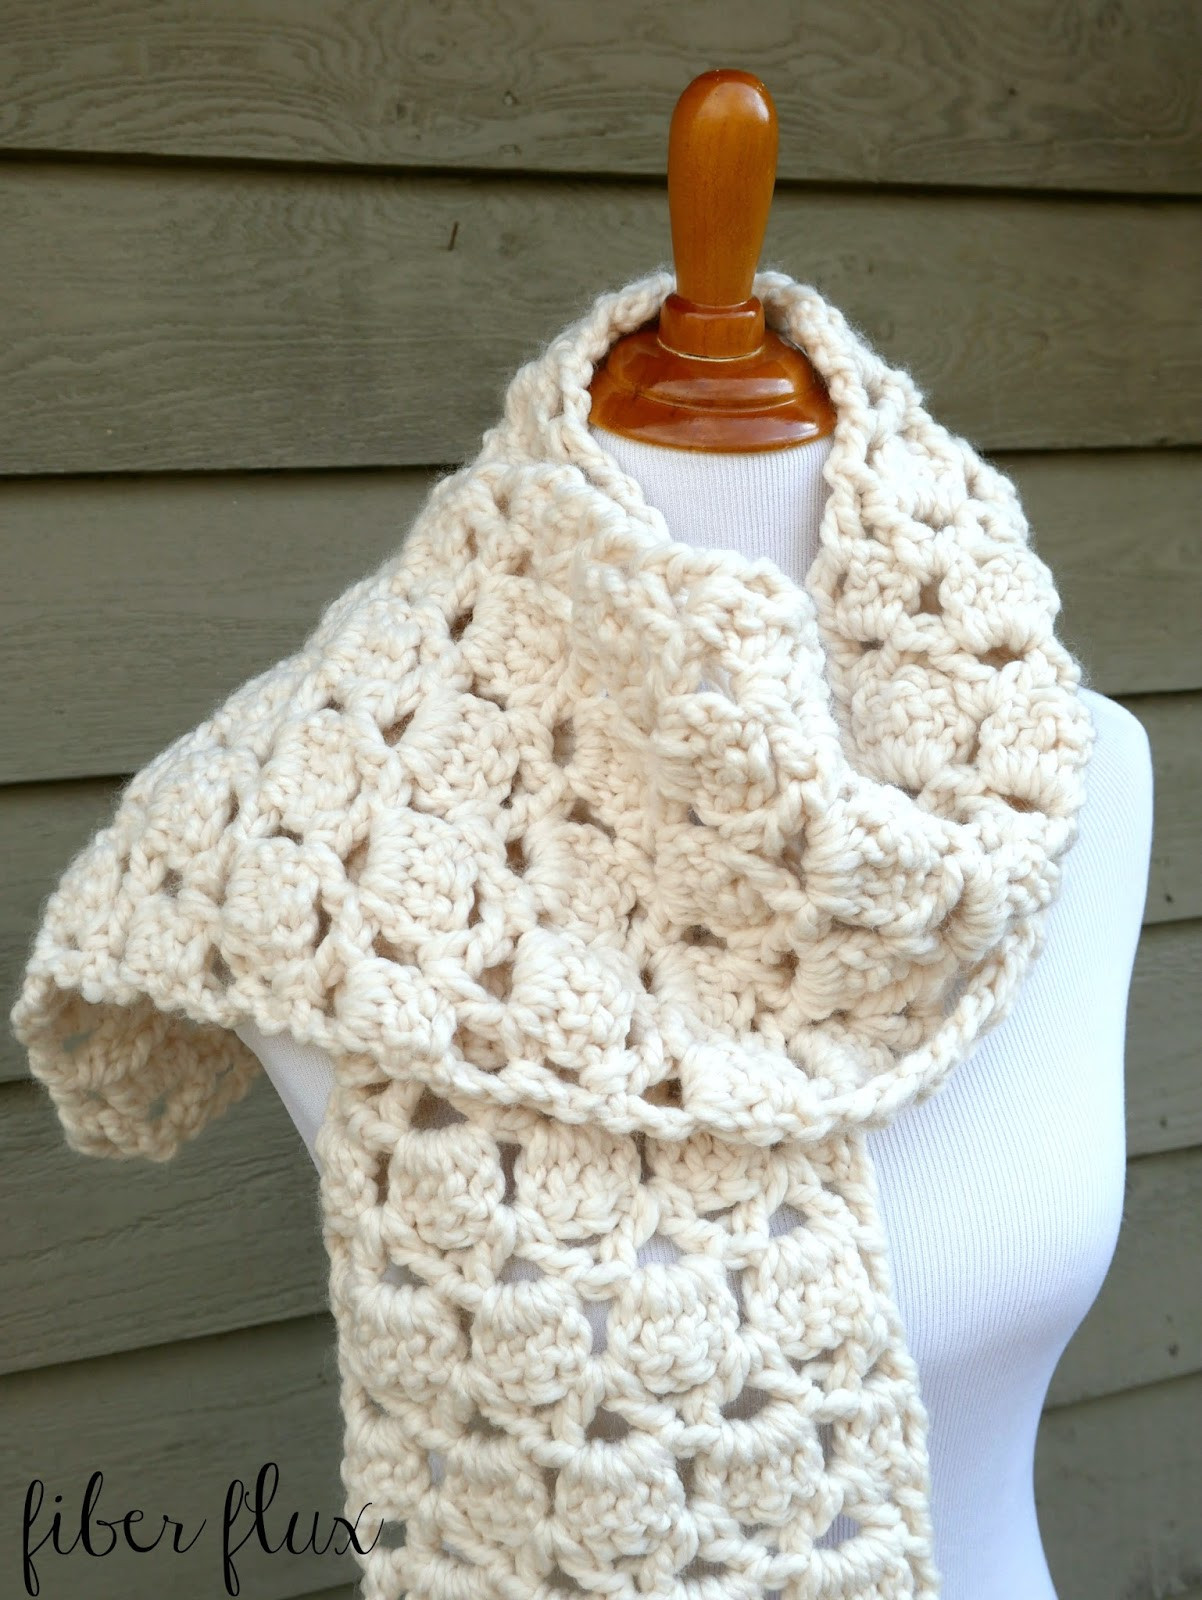 Awesome Super Chunky Crochet Scarf Pattern Chunky Crochet Scarf Pattern Of Superb 40 Ideas Chunky Crochet Scarf Pattern